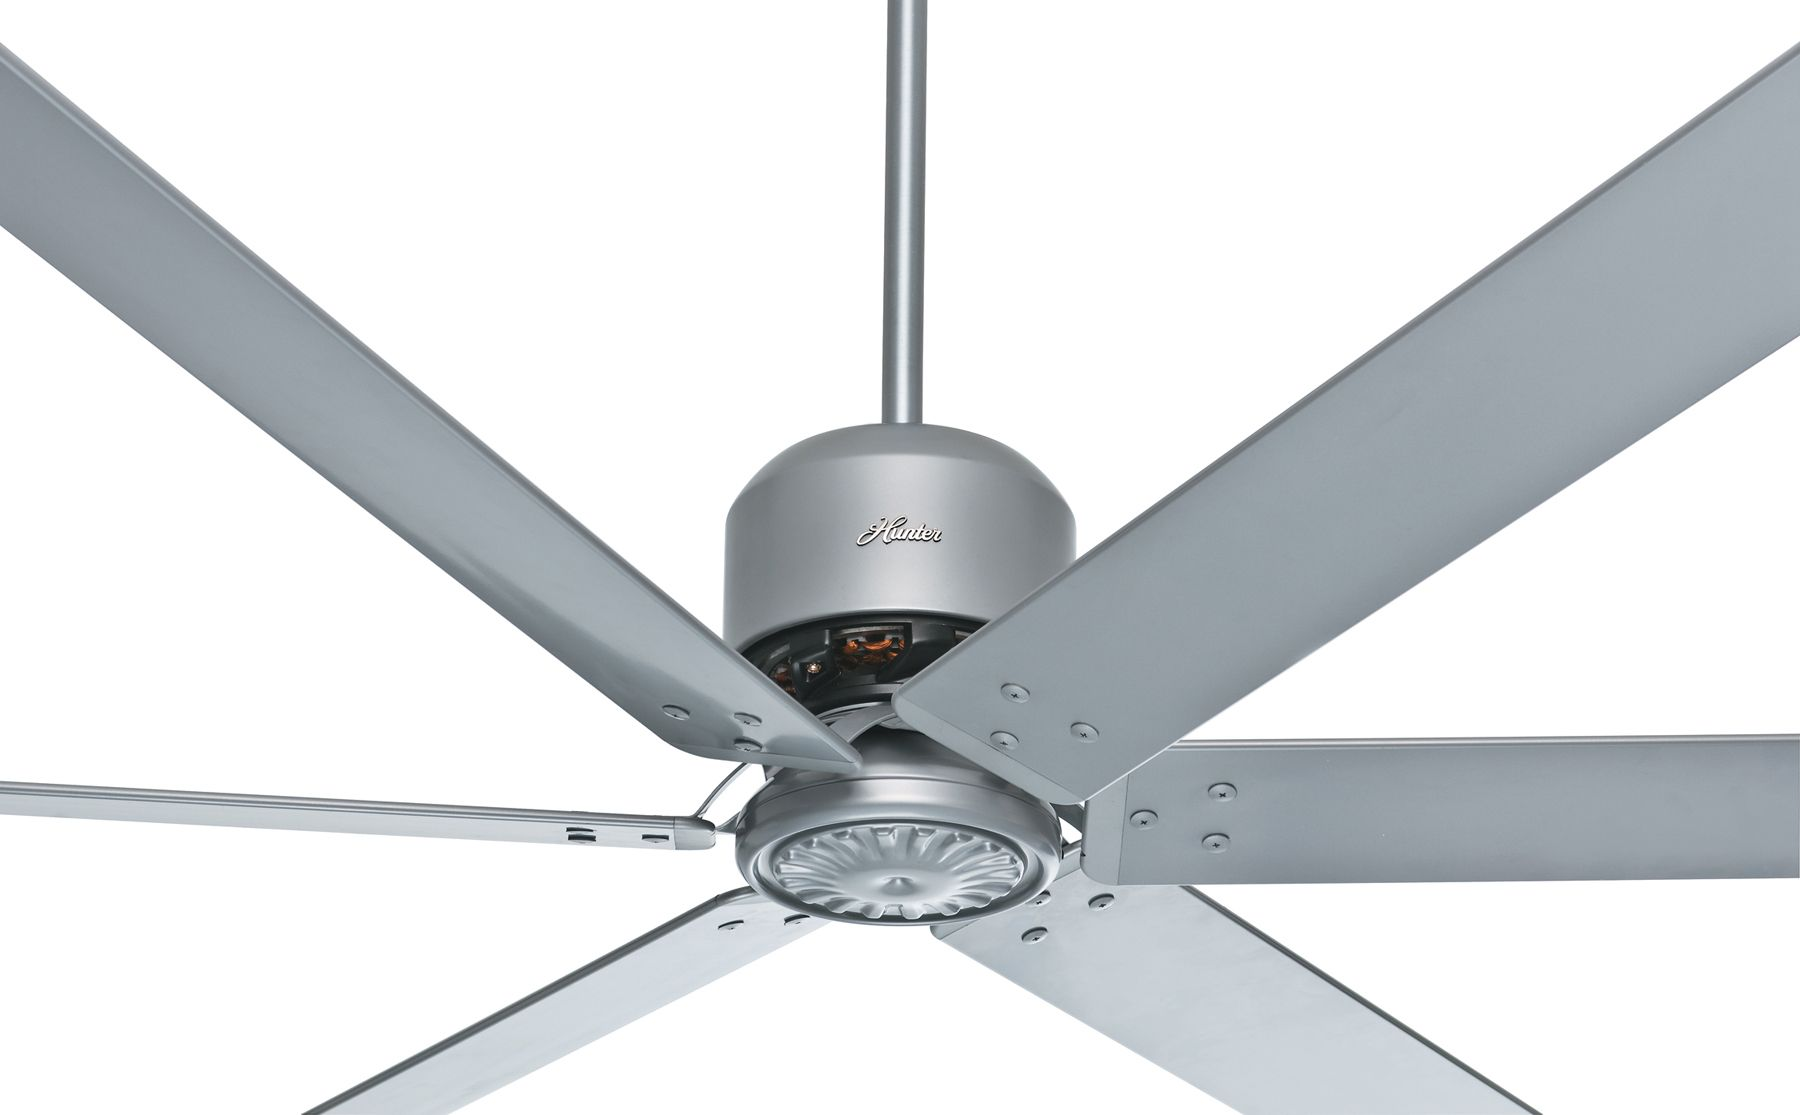 Long Blade Ceiling Fan Introducing The 96 Industrial Ceiling Fan It Is Designed